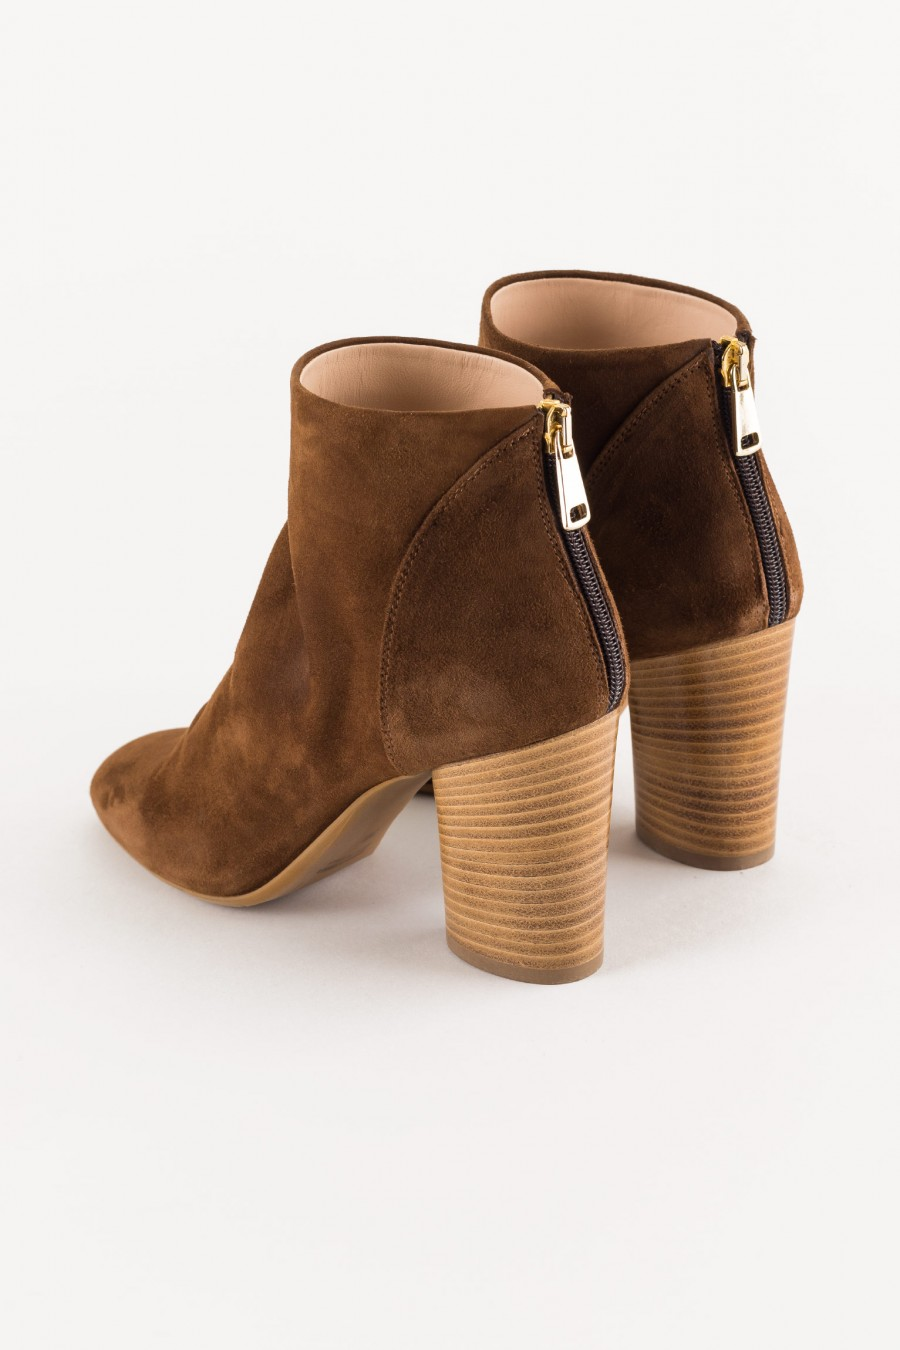 brown suede boot with wooden heel